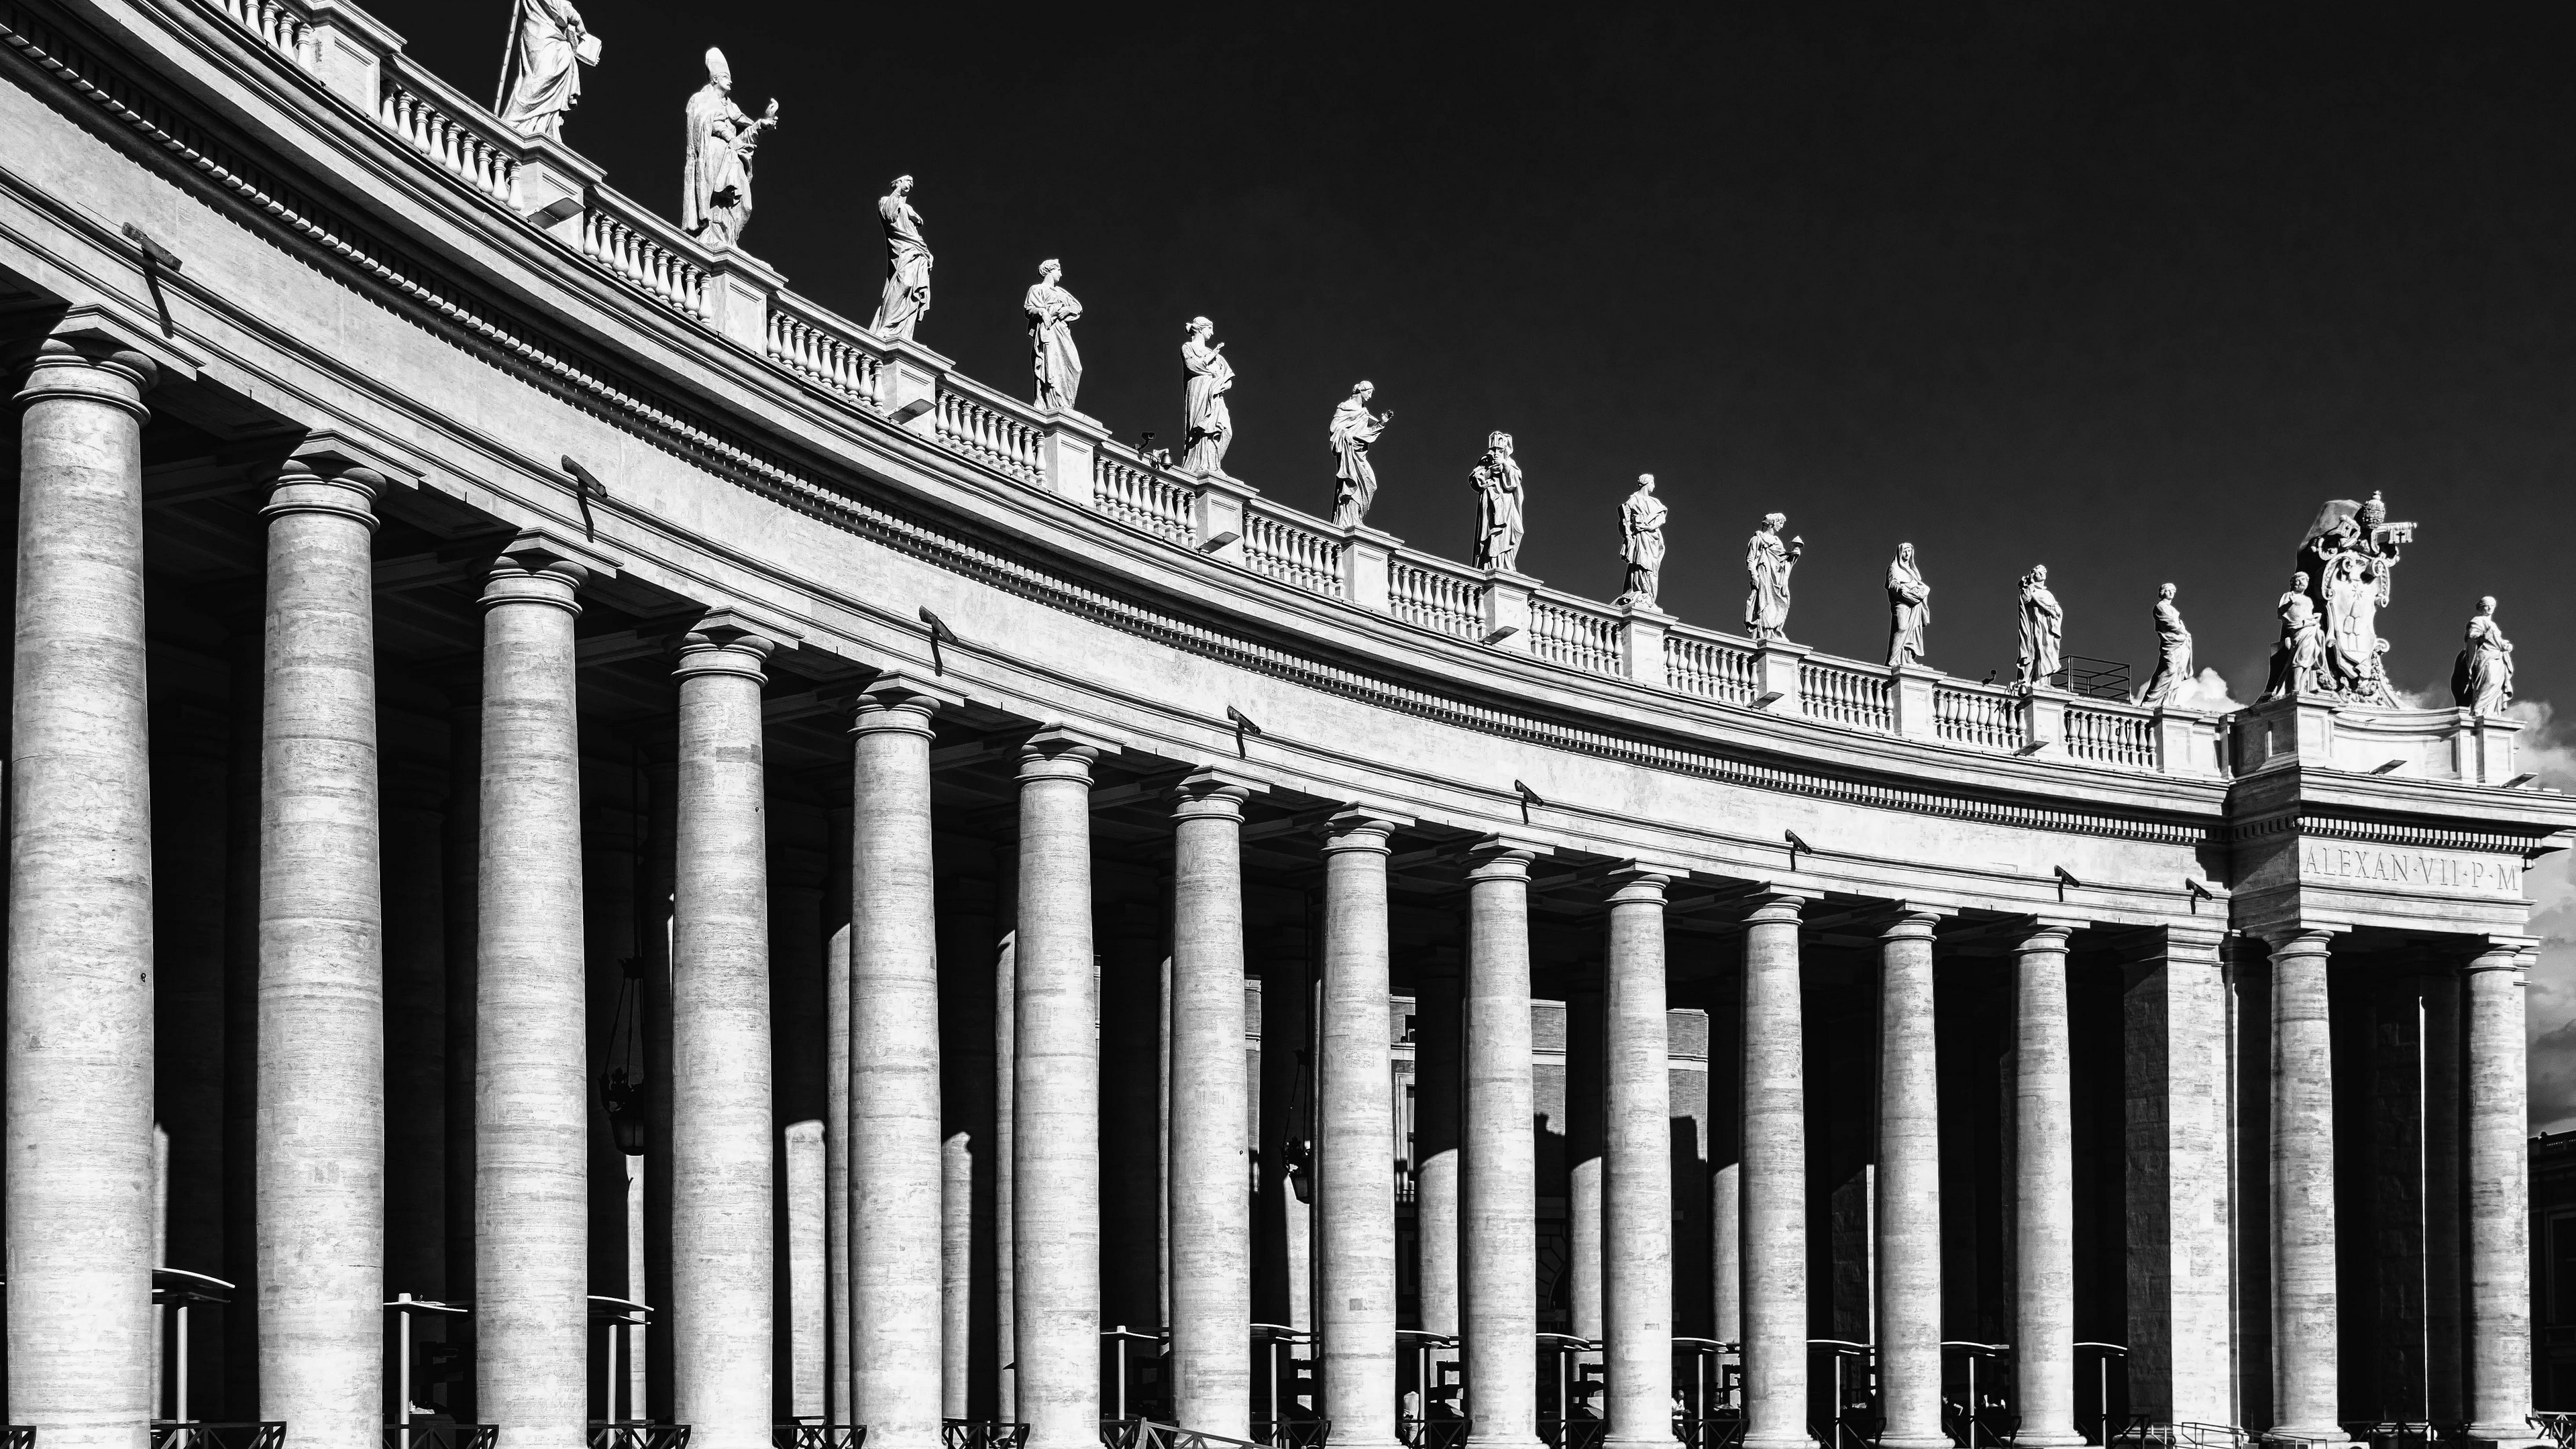 italy rome st peters square bw 4k 1538065238 - italy, rome, st peters square, bw 4k - st peters square, Rome, Italy